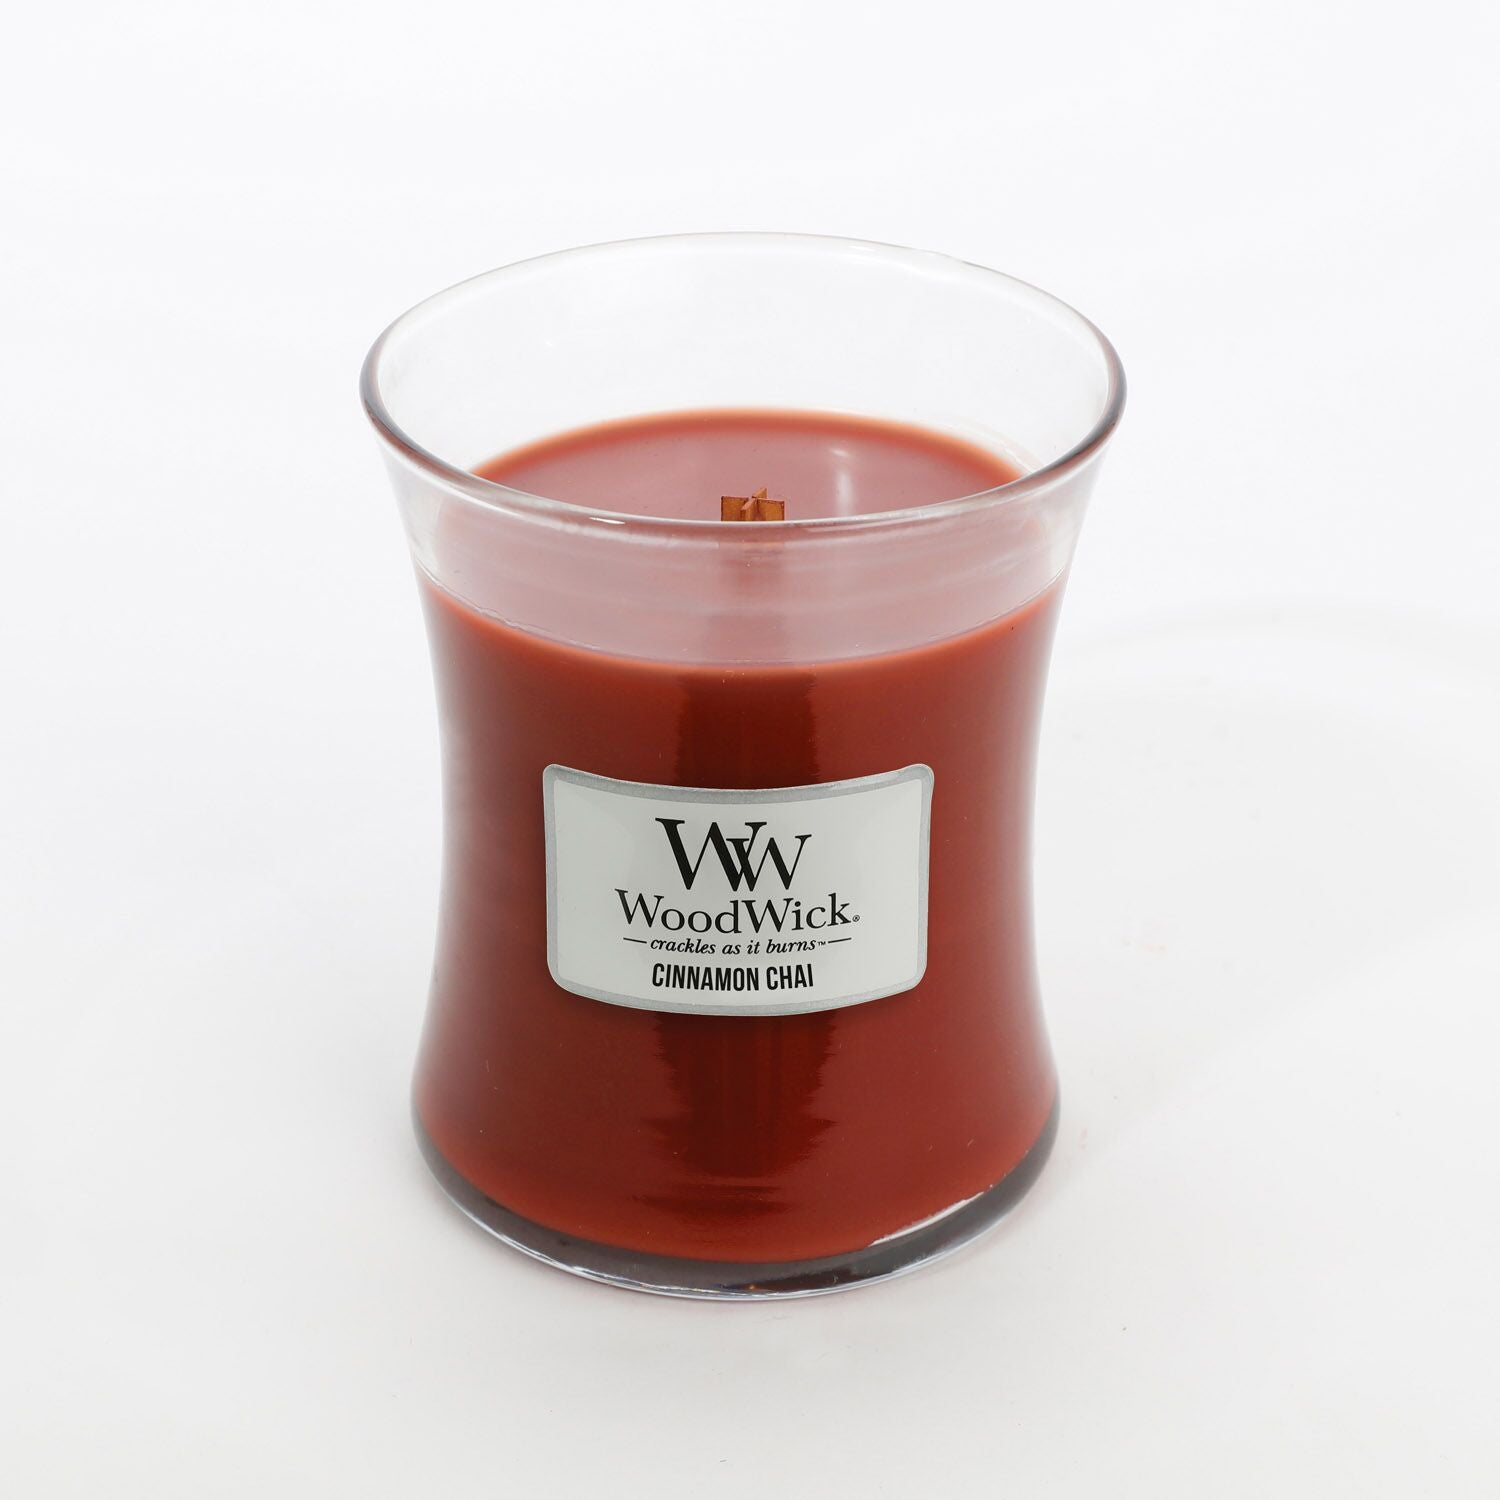 Medium Cinnamon & Chai Scented WoodWick Soy Candle